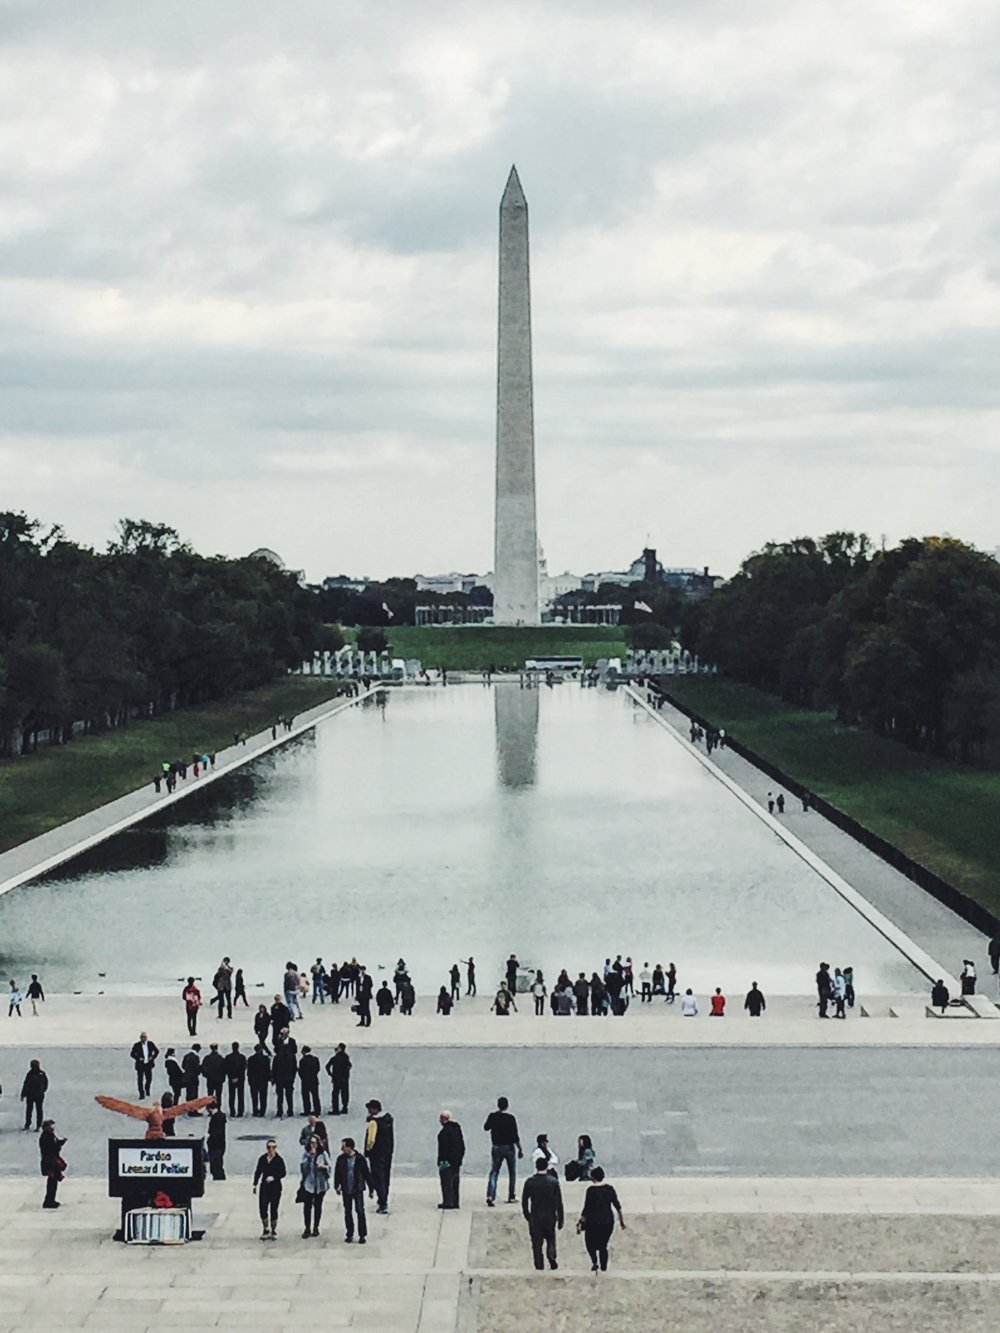 A Photo of the Washington Monument taken in front of the Lincoln Memorial.